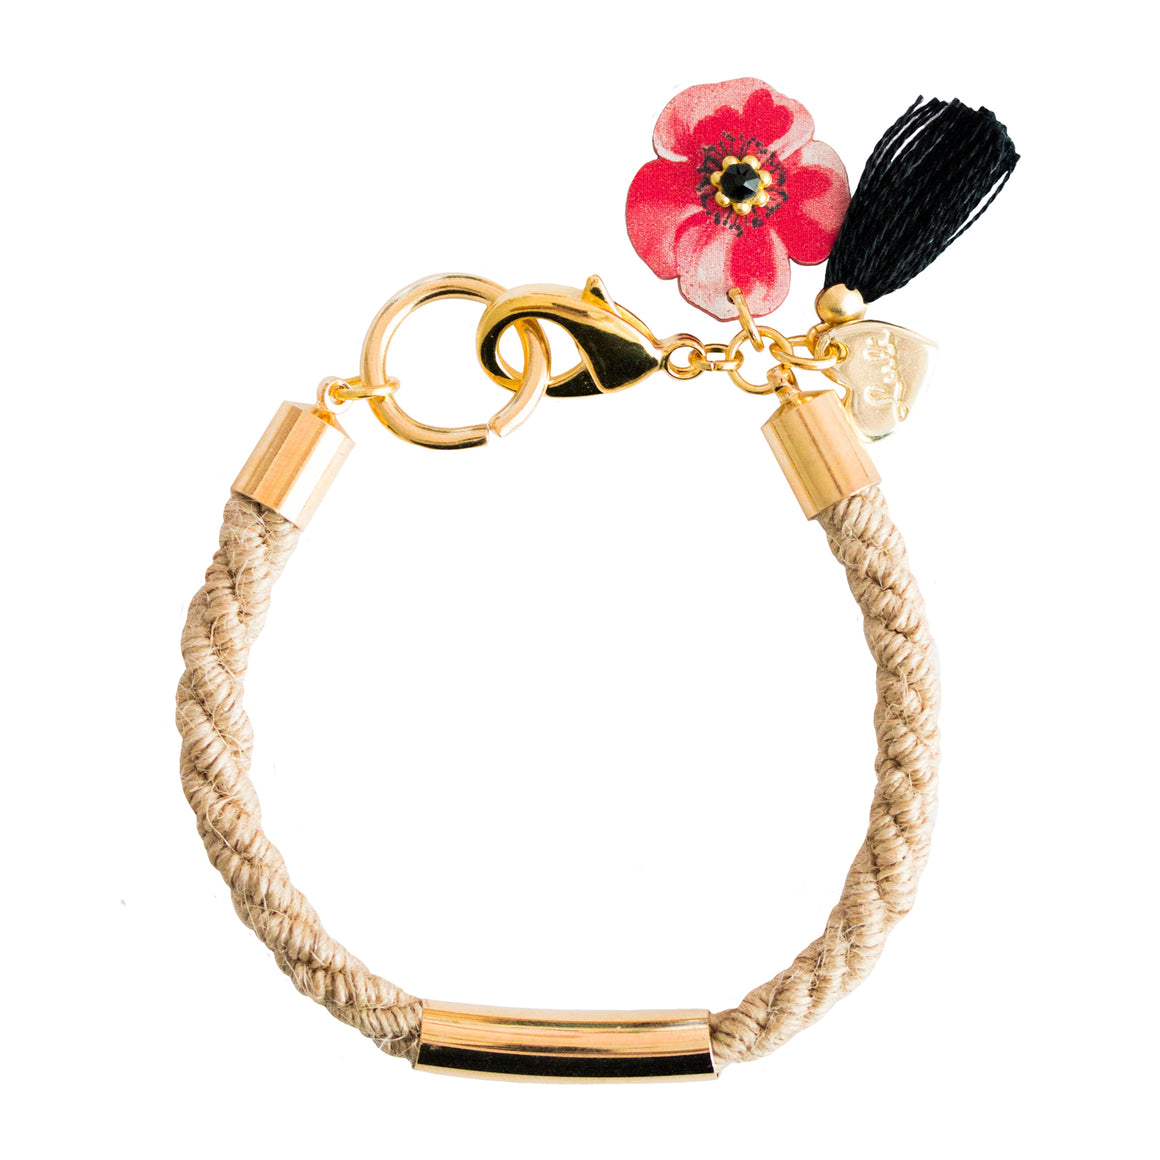 BRACCIALE COLOR TWIST POPPY JUTA - Luli Art Bijoux